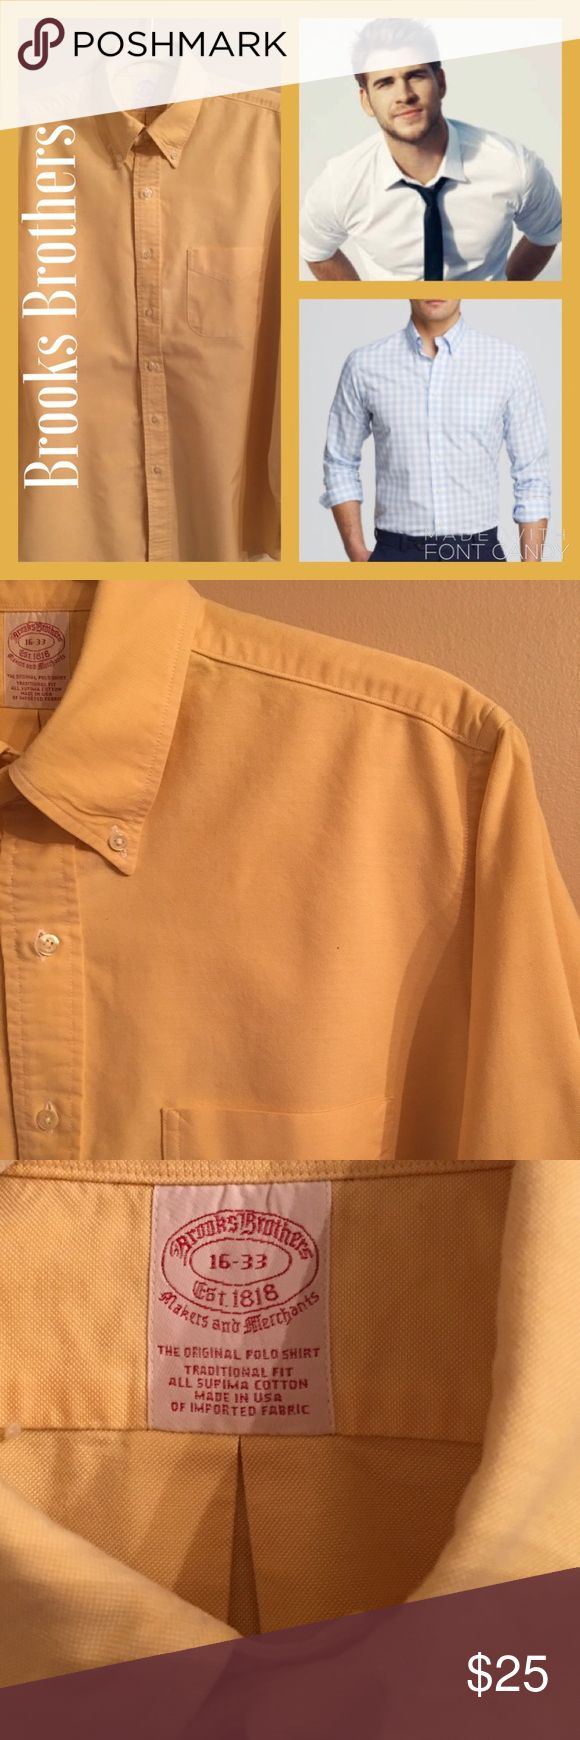 Classic Brooks Brothers Yellow Button Down Shirt Classic Brooks Brothers Yellow Button Down Shirt. High quality shirt. Great condition. No underarm stains or ring around the collar. No fraying or tears. Great shirt. Brooks Brothers Shirts Dress Shirts